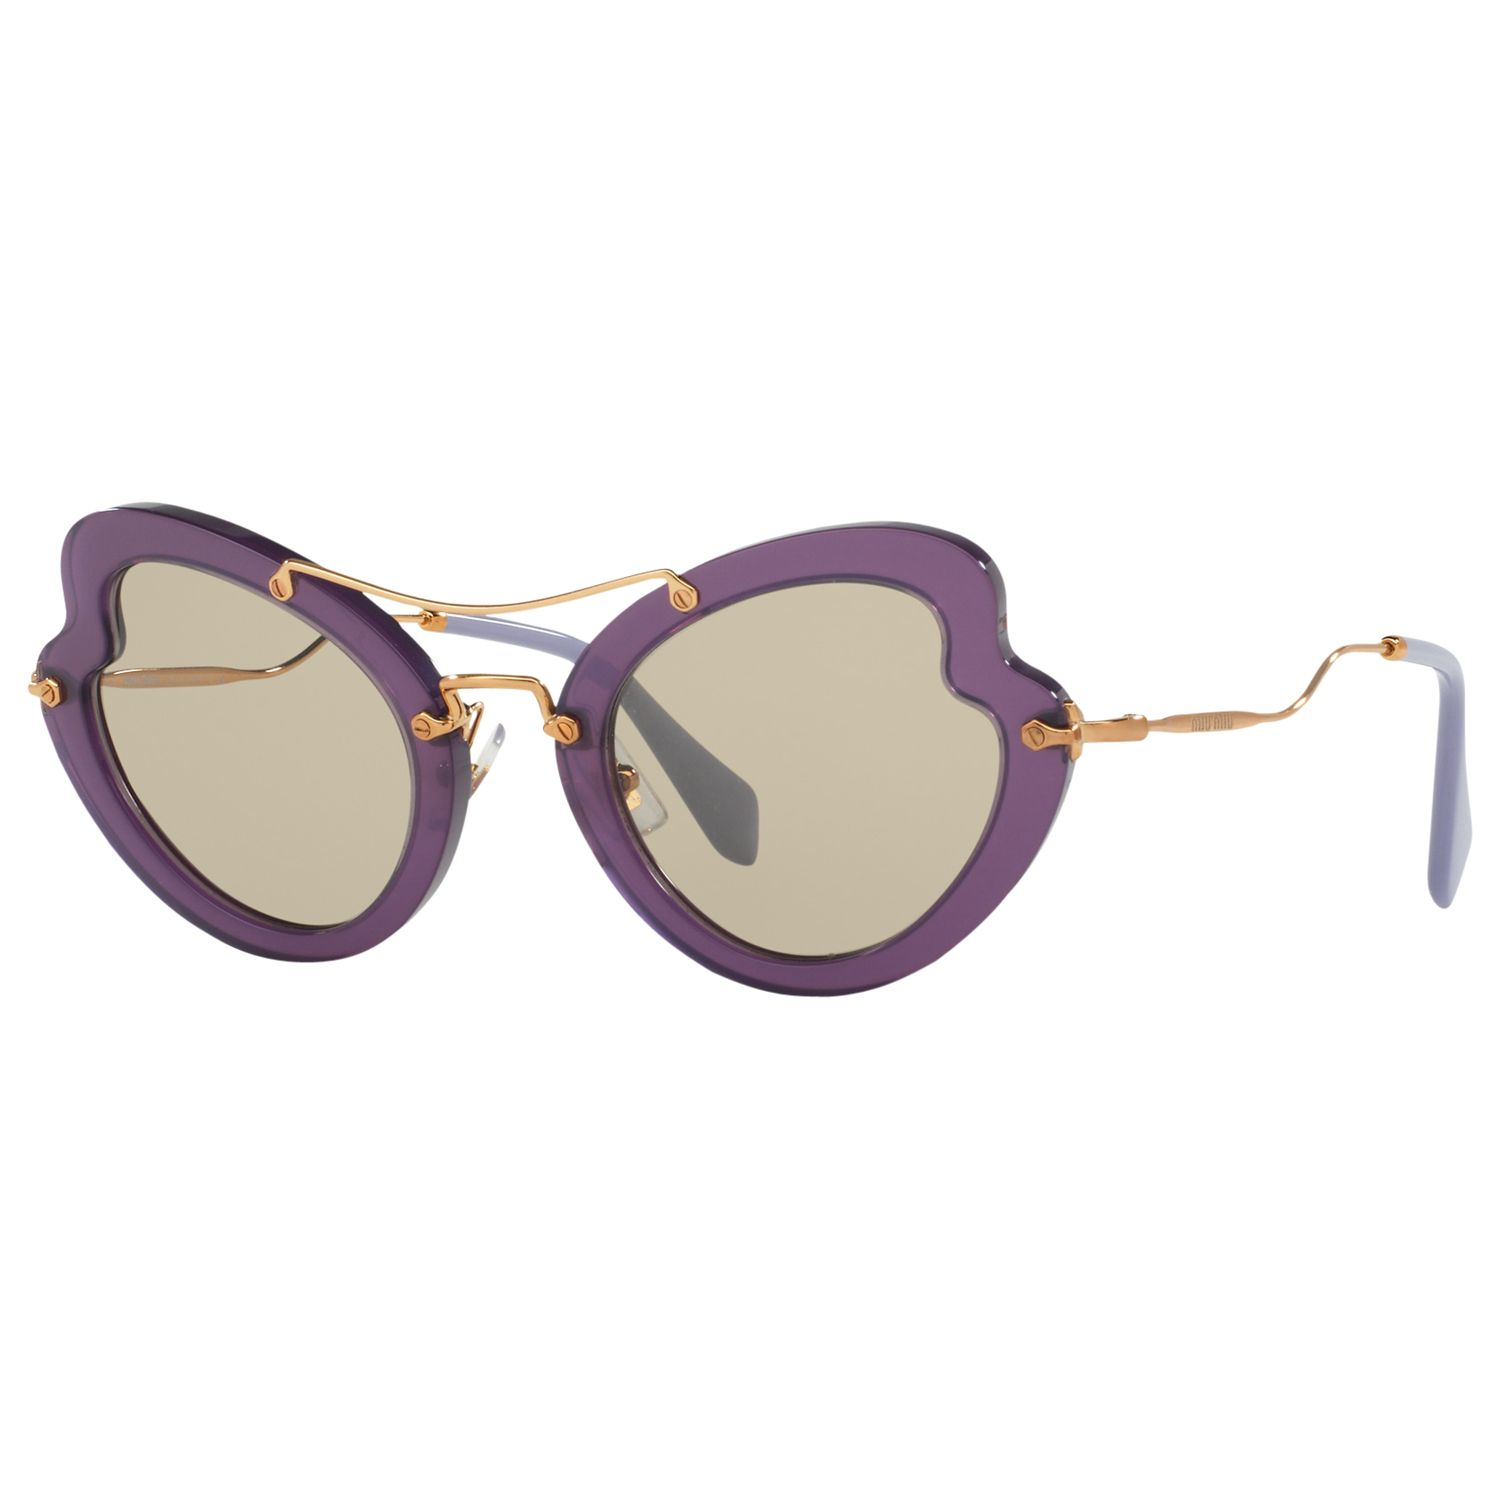 Miu Miu Miu Miu MU11RS Cat's Eye Sunglasses